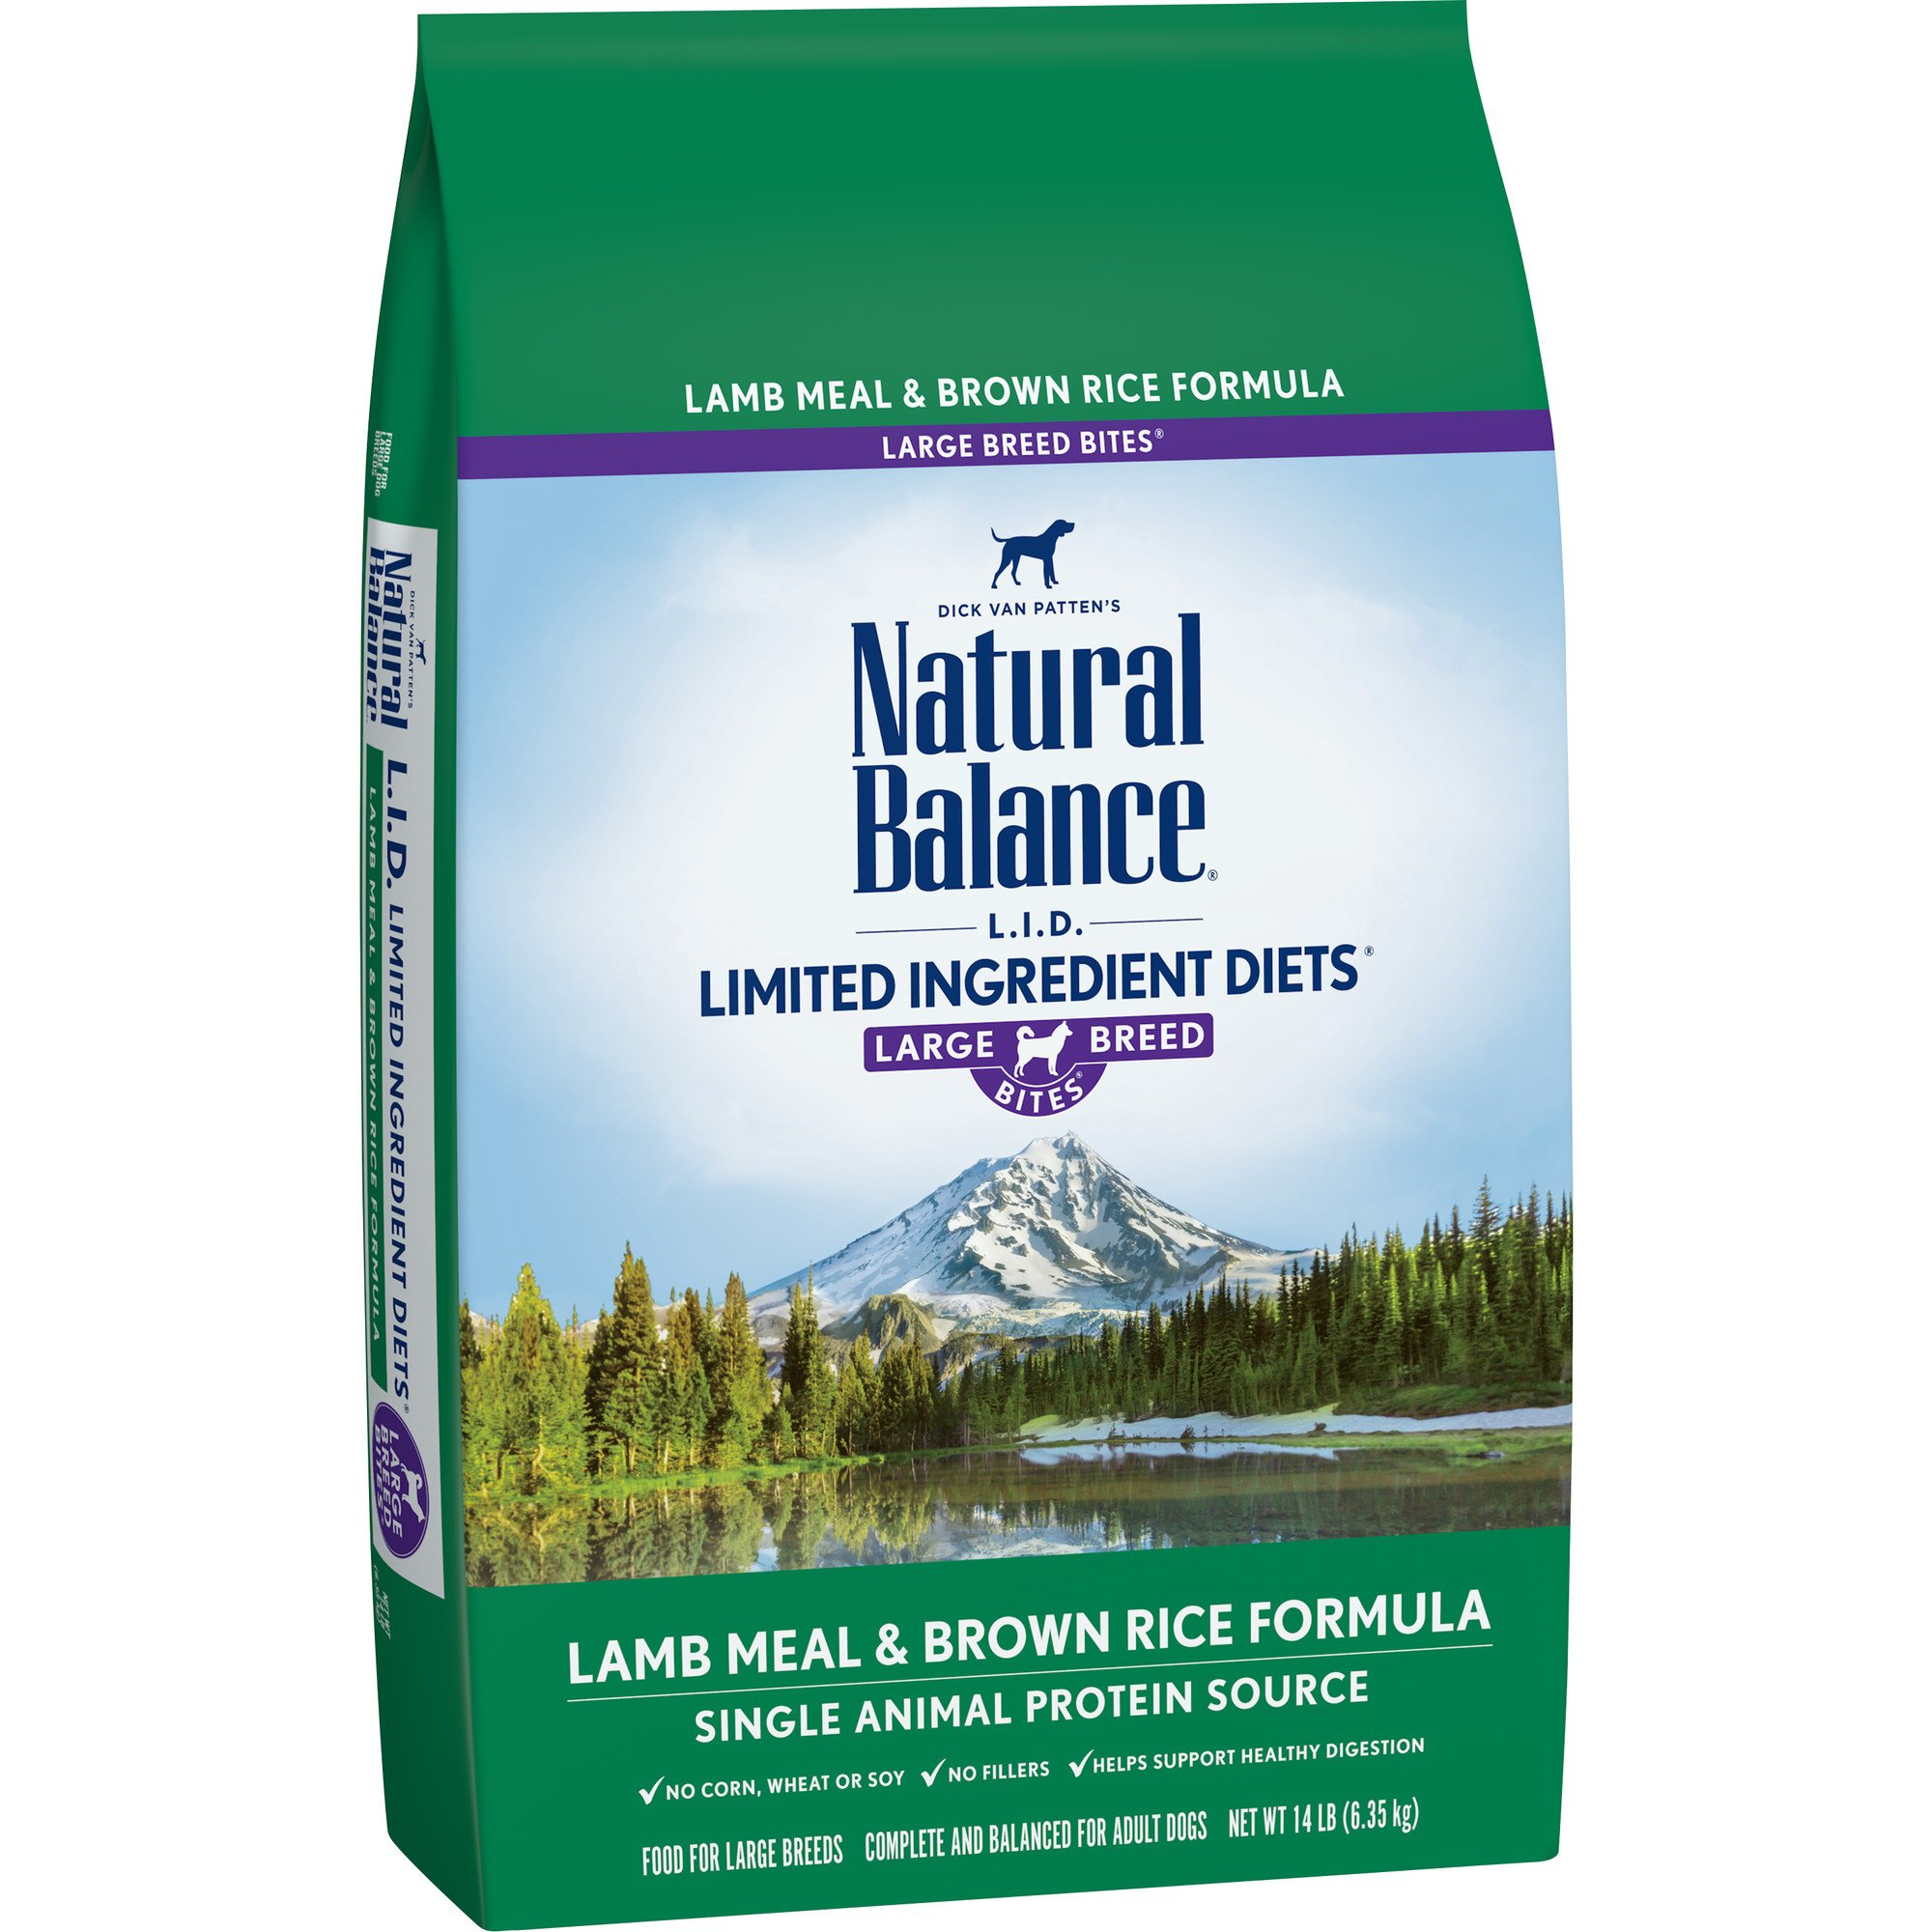 Natural Balance L.I.D. Limited Ingredient Diets Lamb Meal & Brown Rice Formula Large Breed Dog Food, 14 lbs.